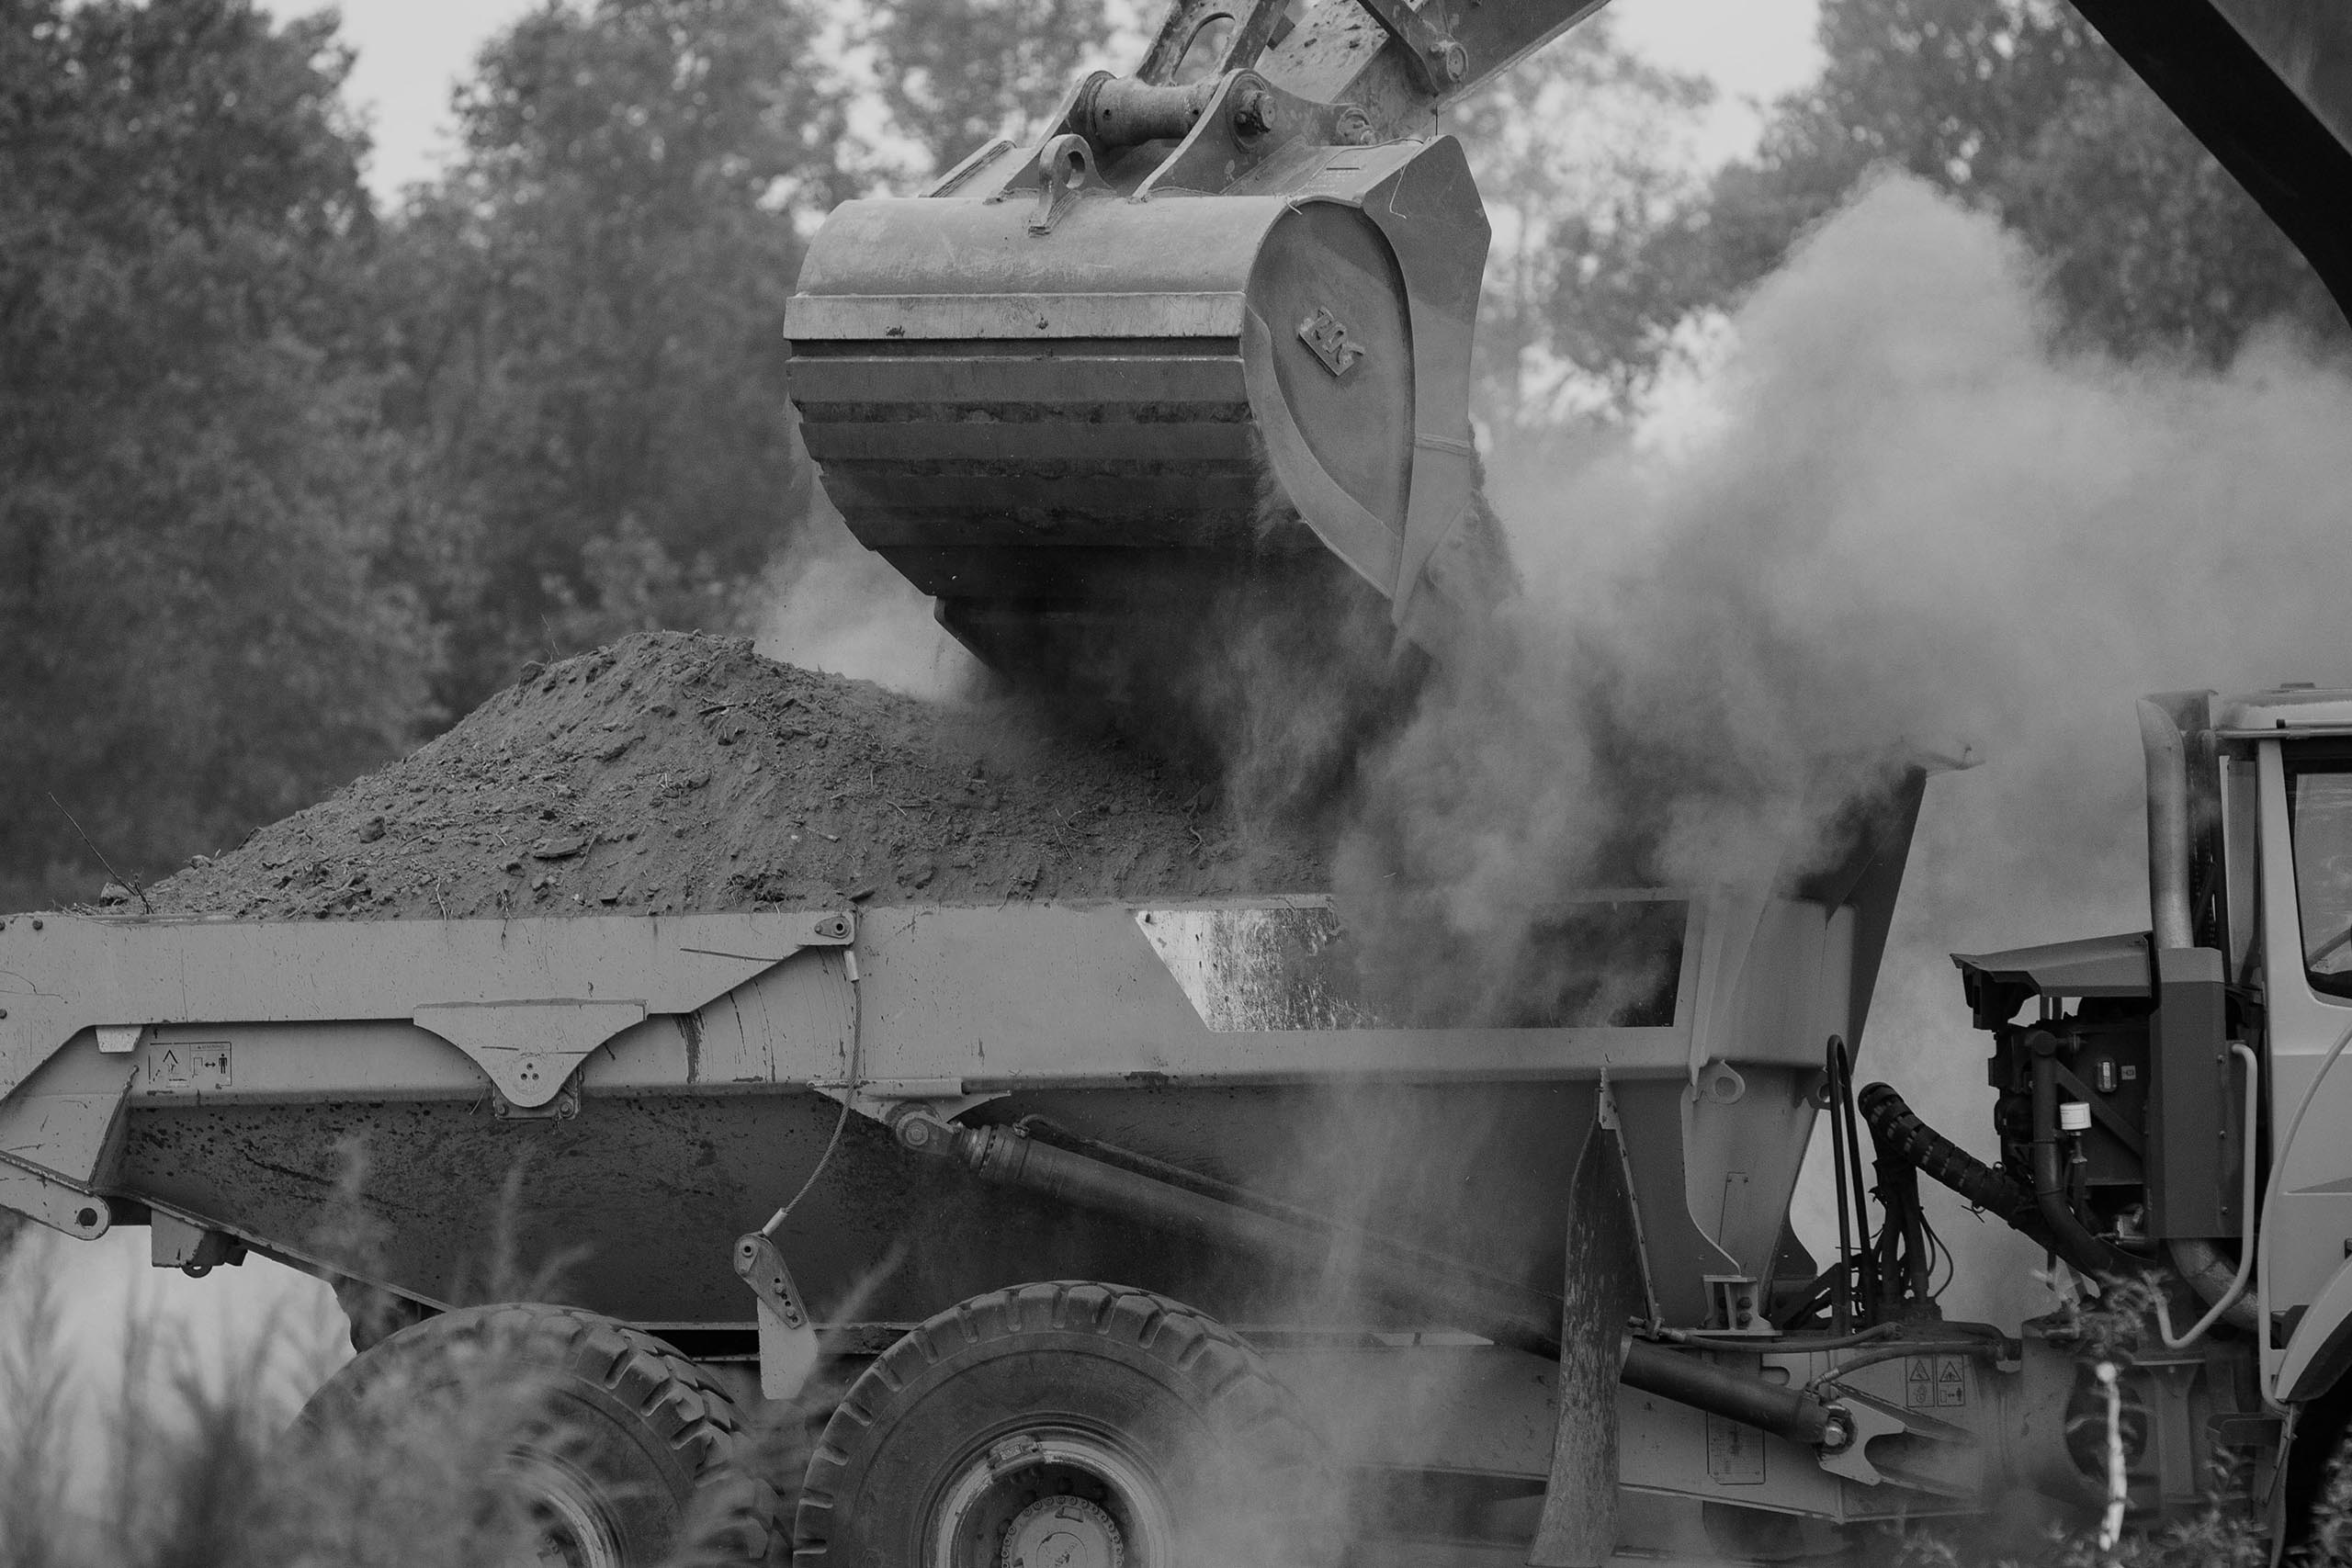 black and white image of excavator bucket dumping dirt in truck